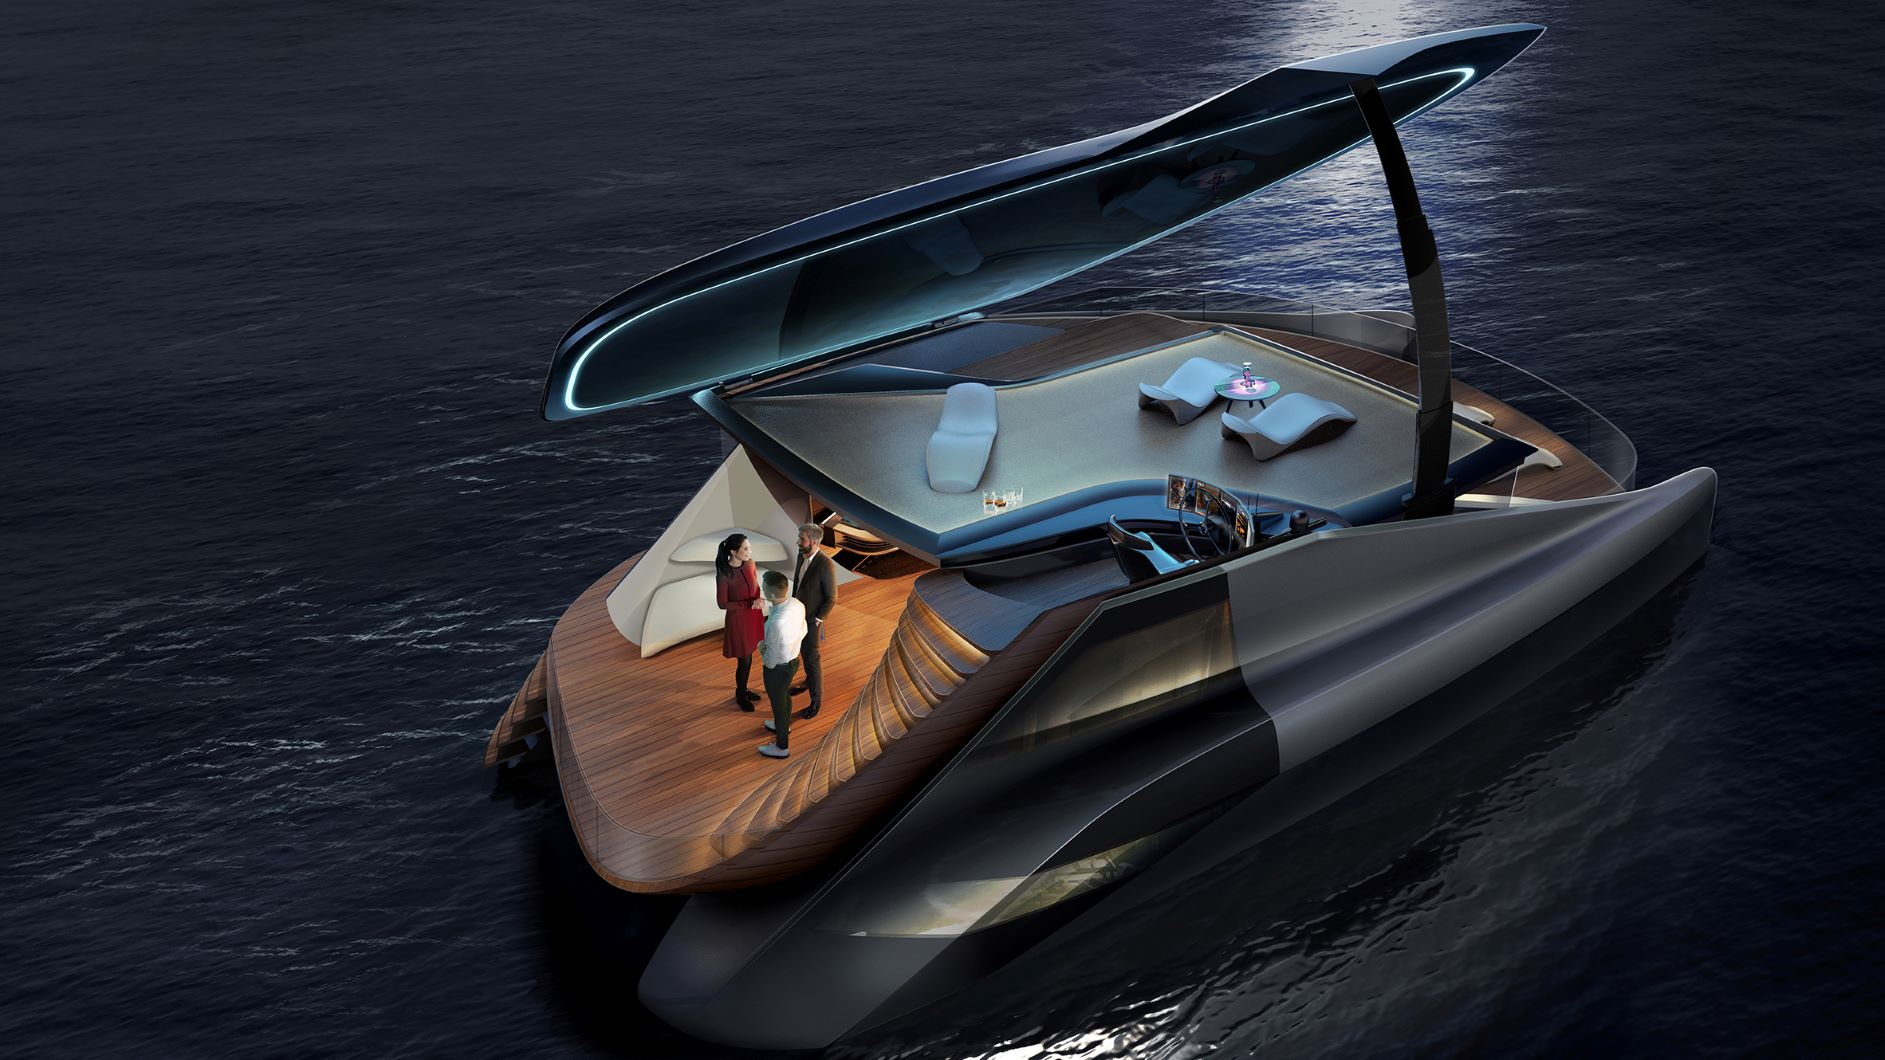 Icona debuts in yacht design with an electric catamaran concept